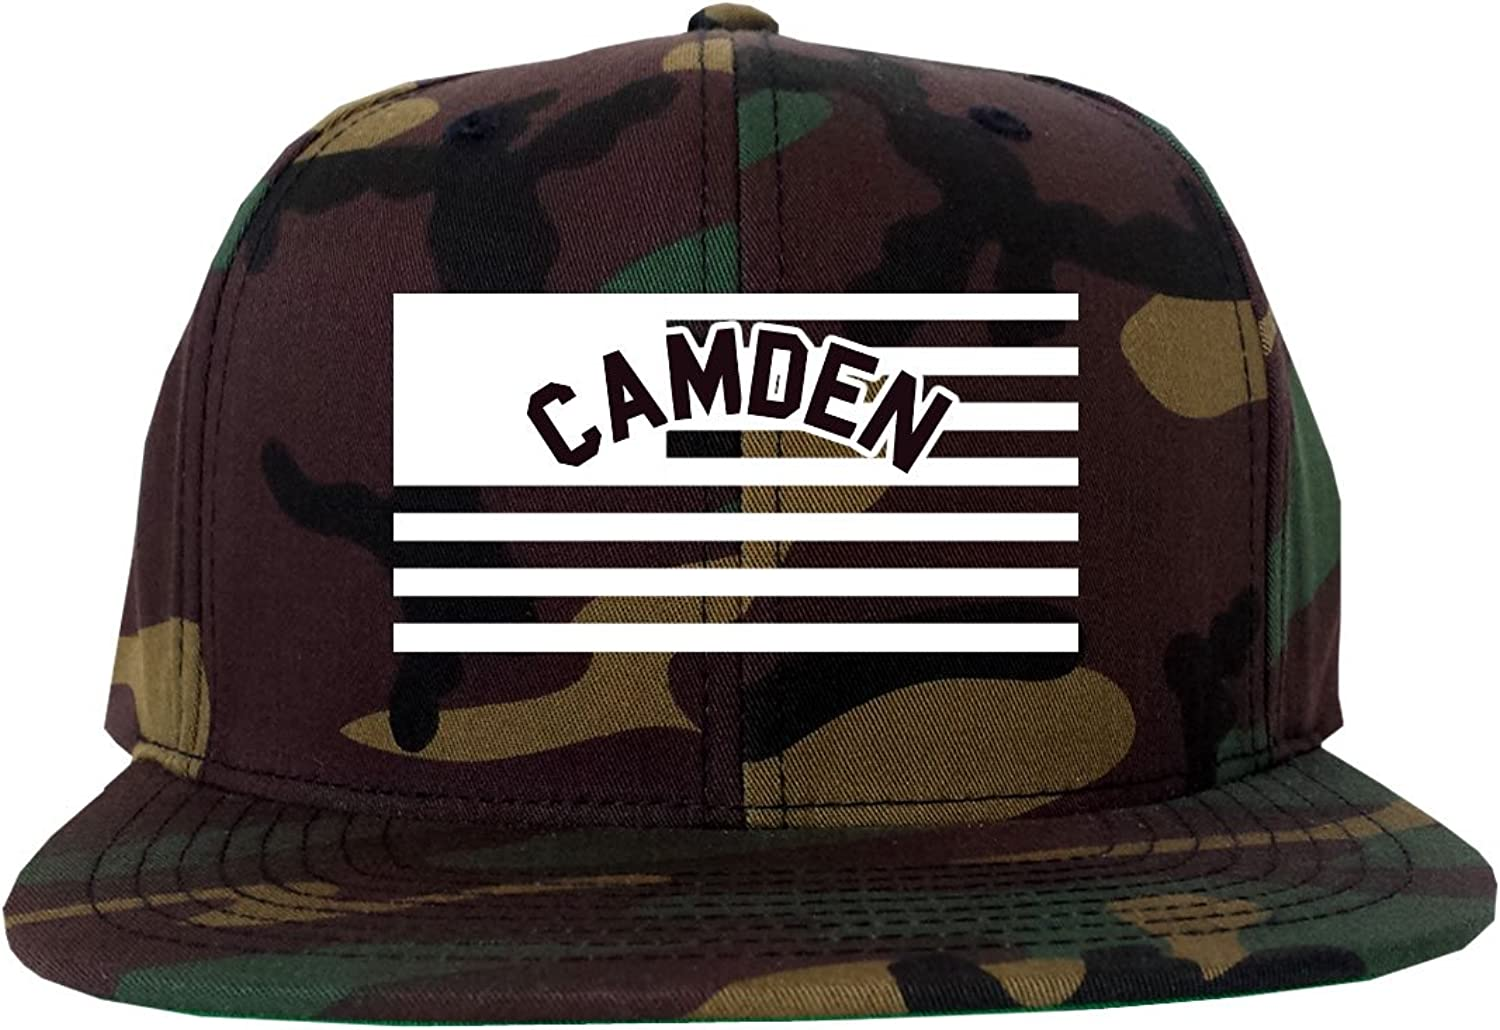 - - - City Of Camden with United States Flag Snapback Hat Cap Army Camo d3276f